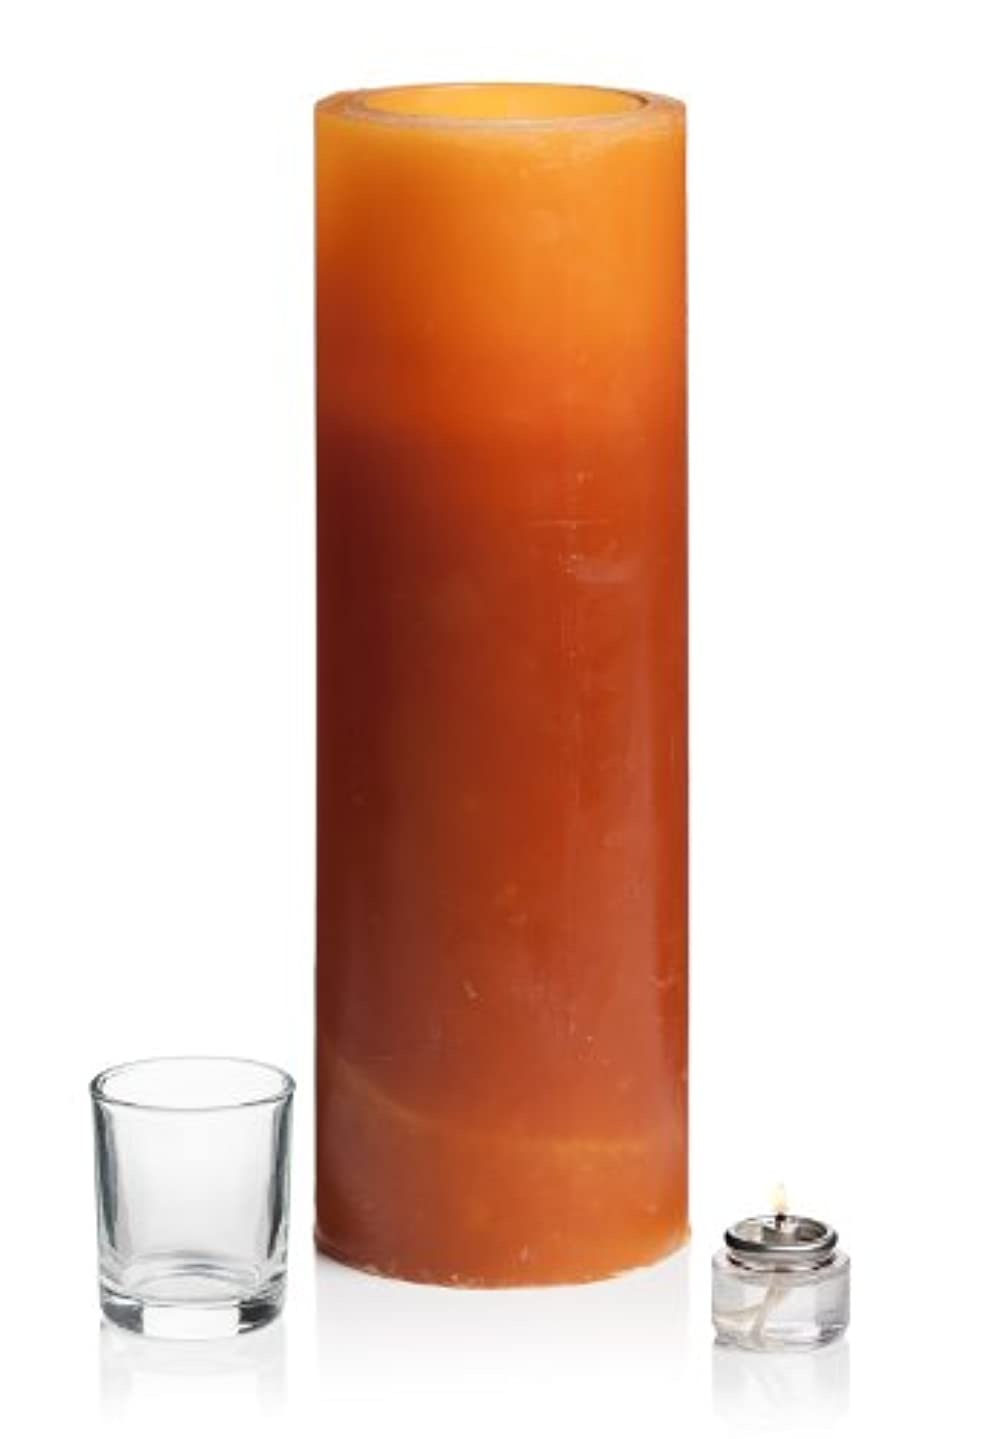 ランク精巧な液化する(10cm x 30cm, Amber) - Stone Candles L12M Amber Luminary Candle, 10cm by 30cm